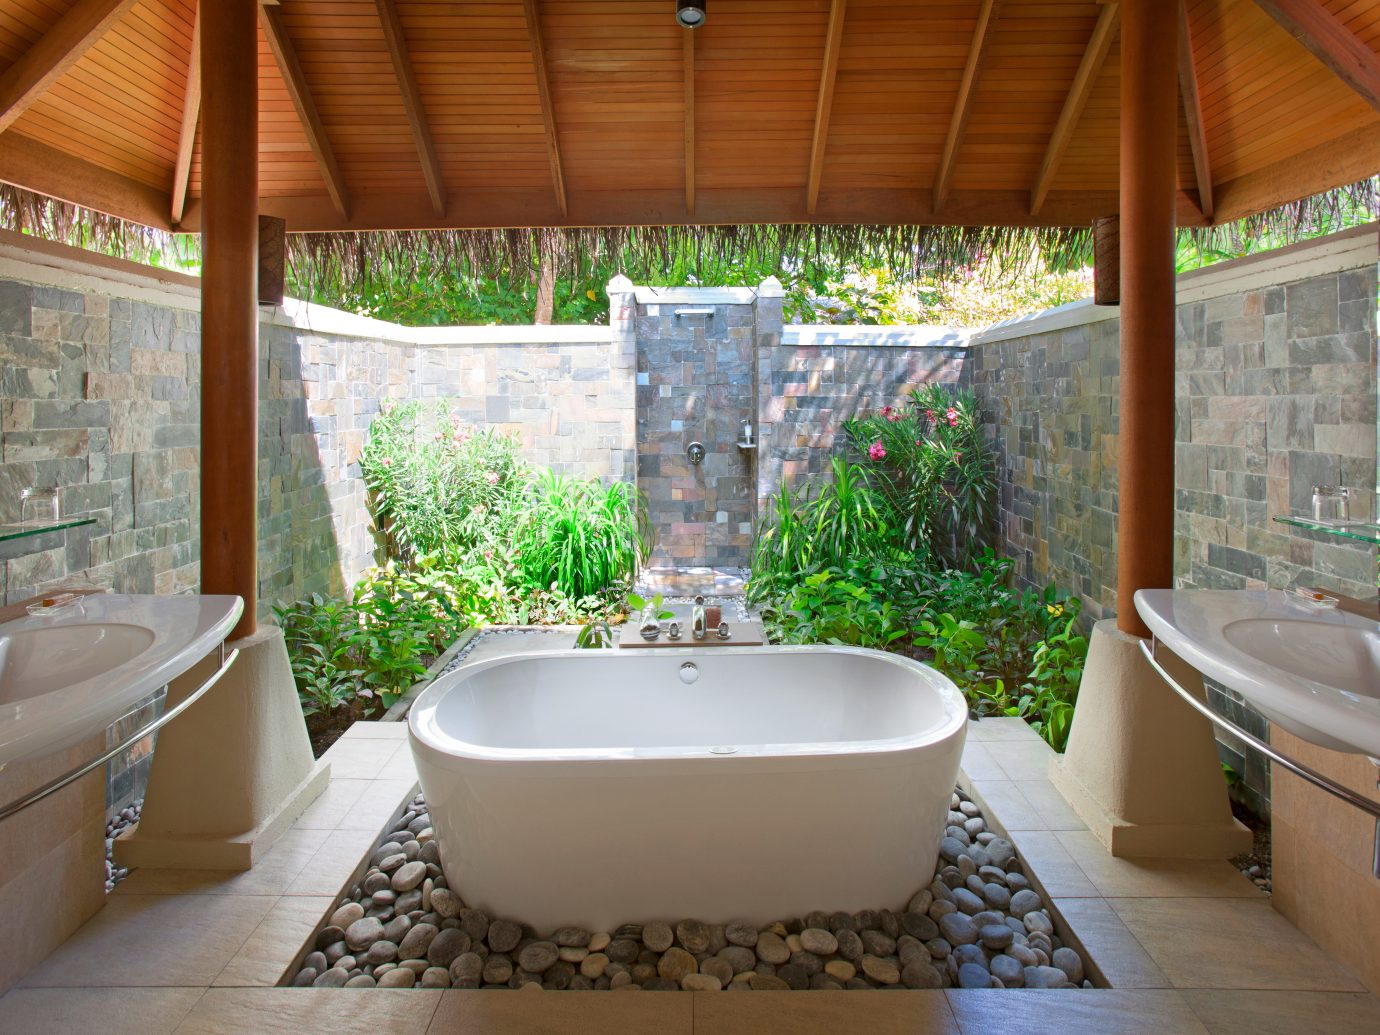 Outdoor bathtub at Baros Maldives